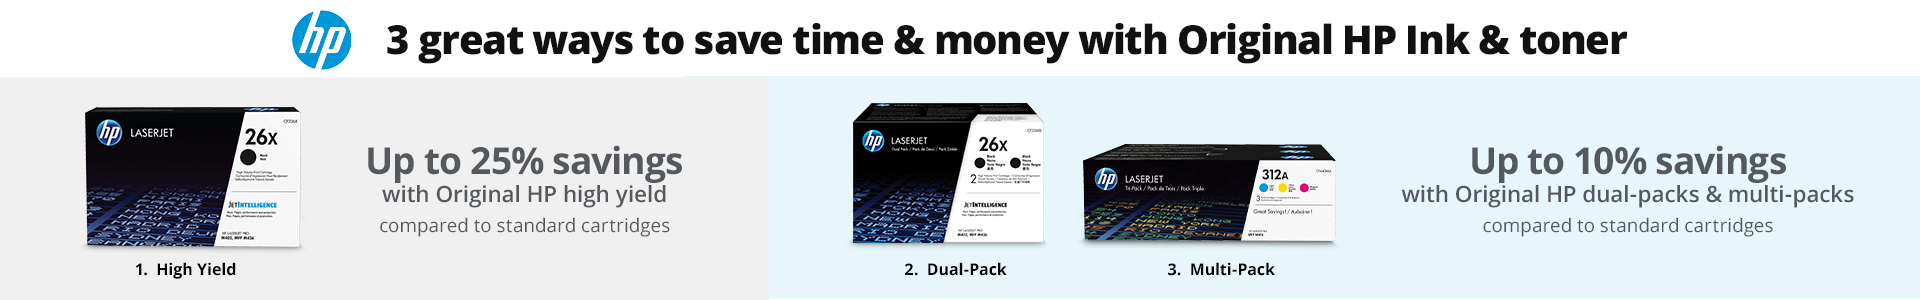 3 great ways to save time and money with Original HP ink and toner